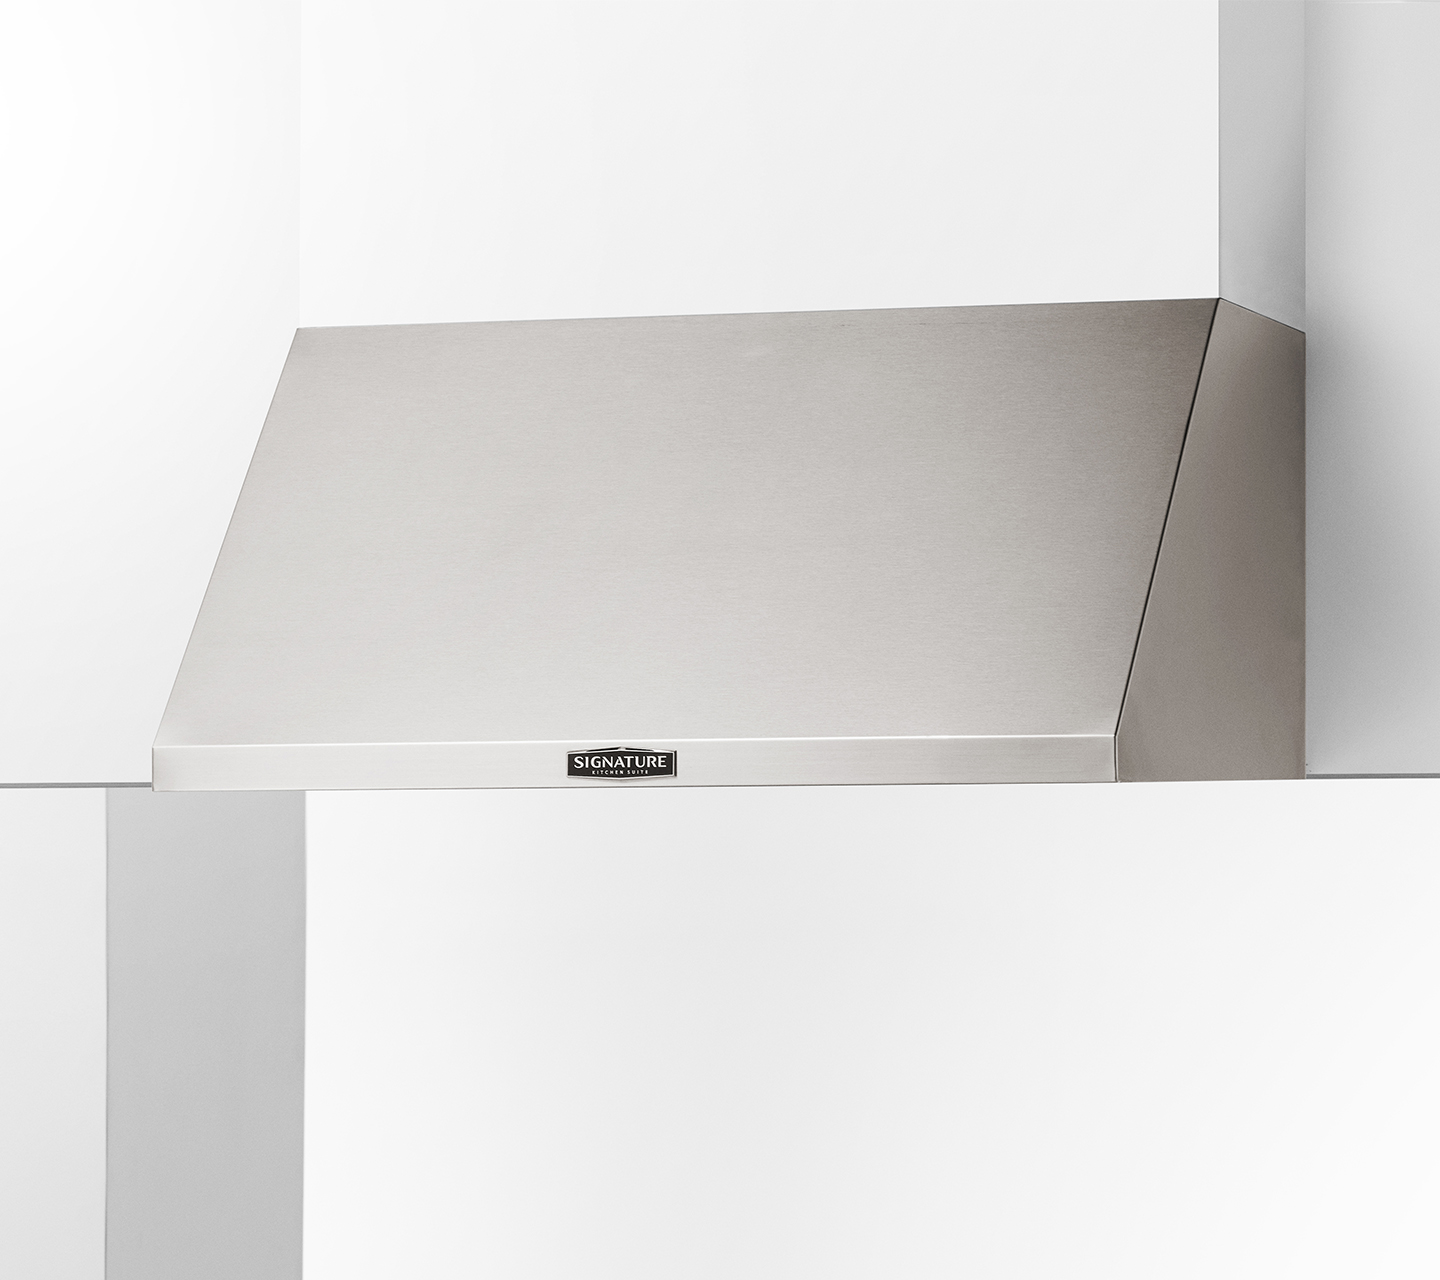 Stainless Steel Ventilation Hood from Signature Kitchen Suite